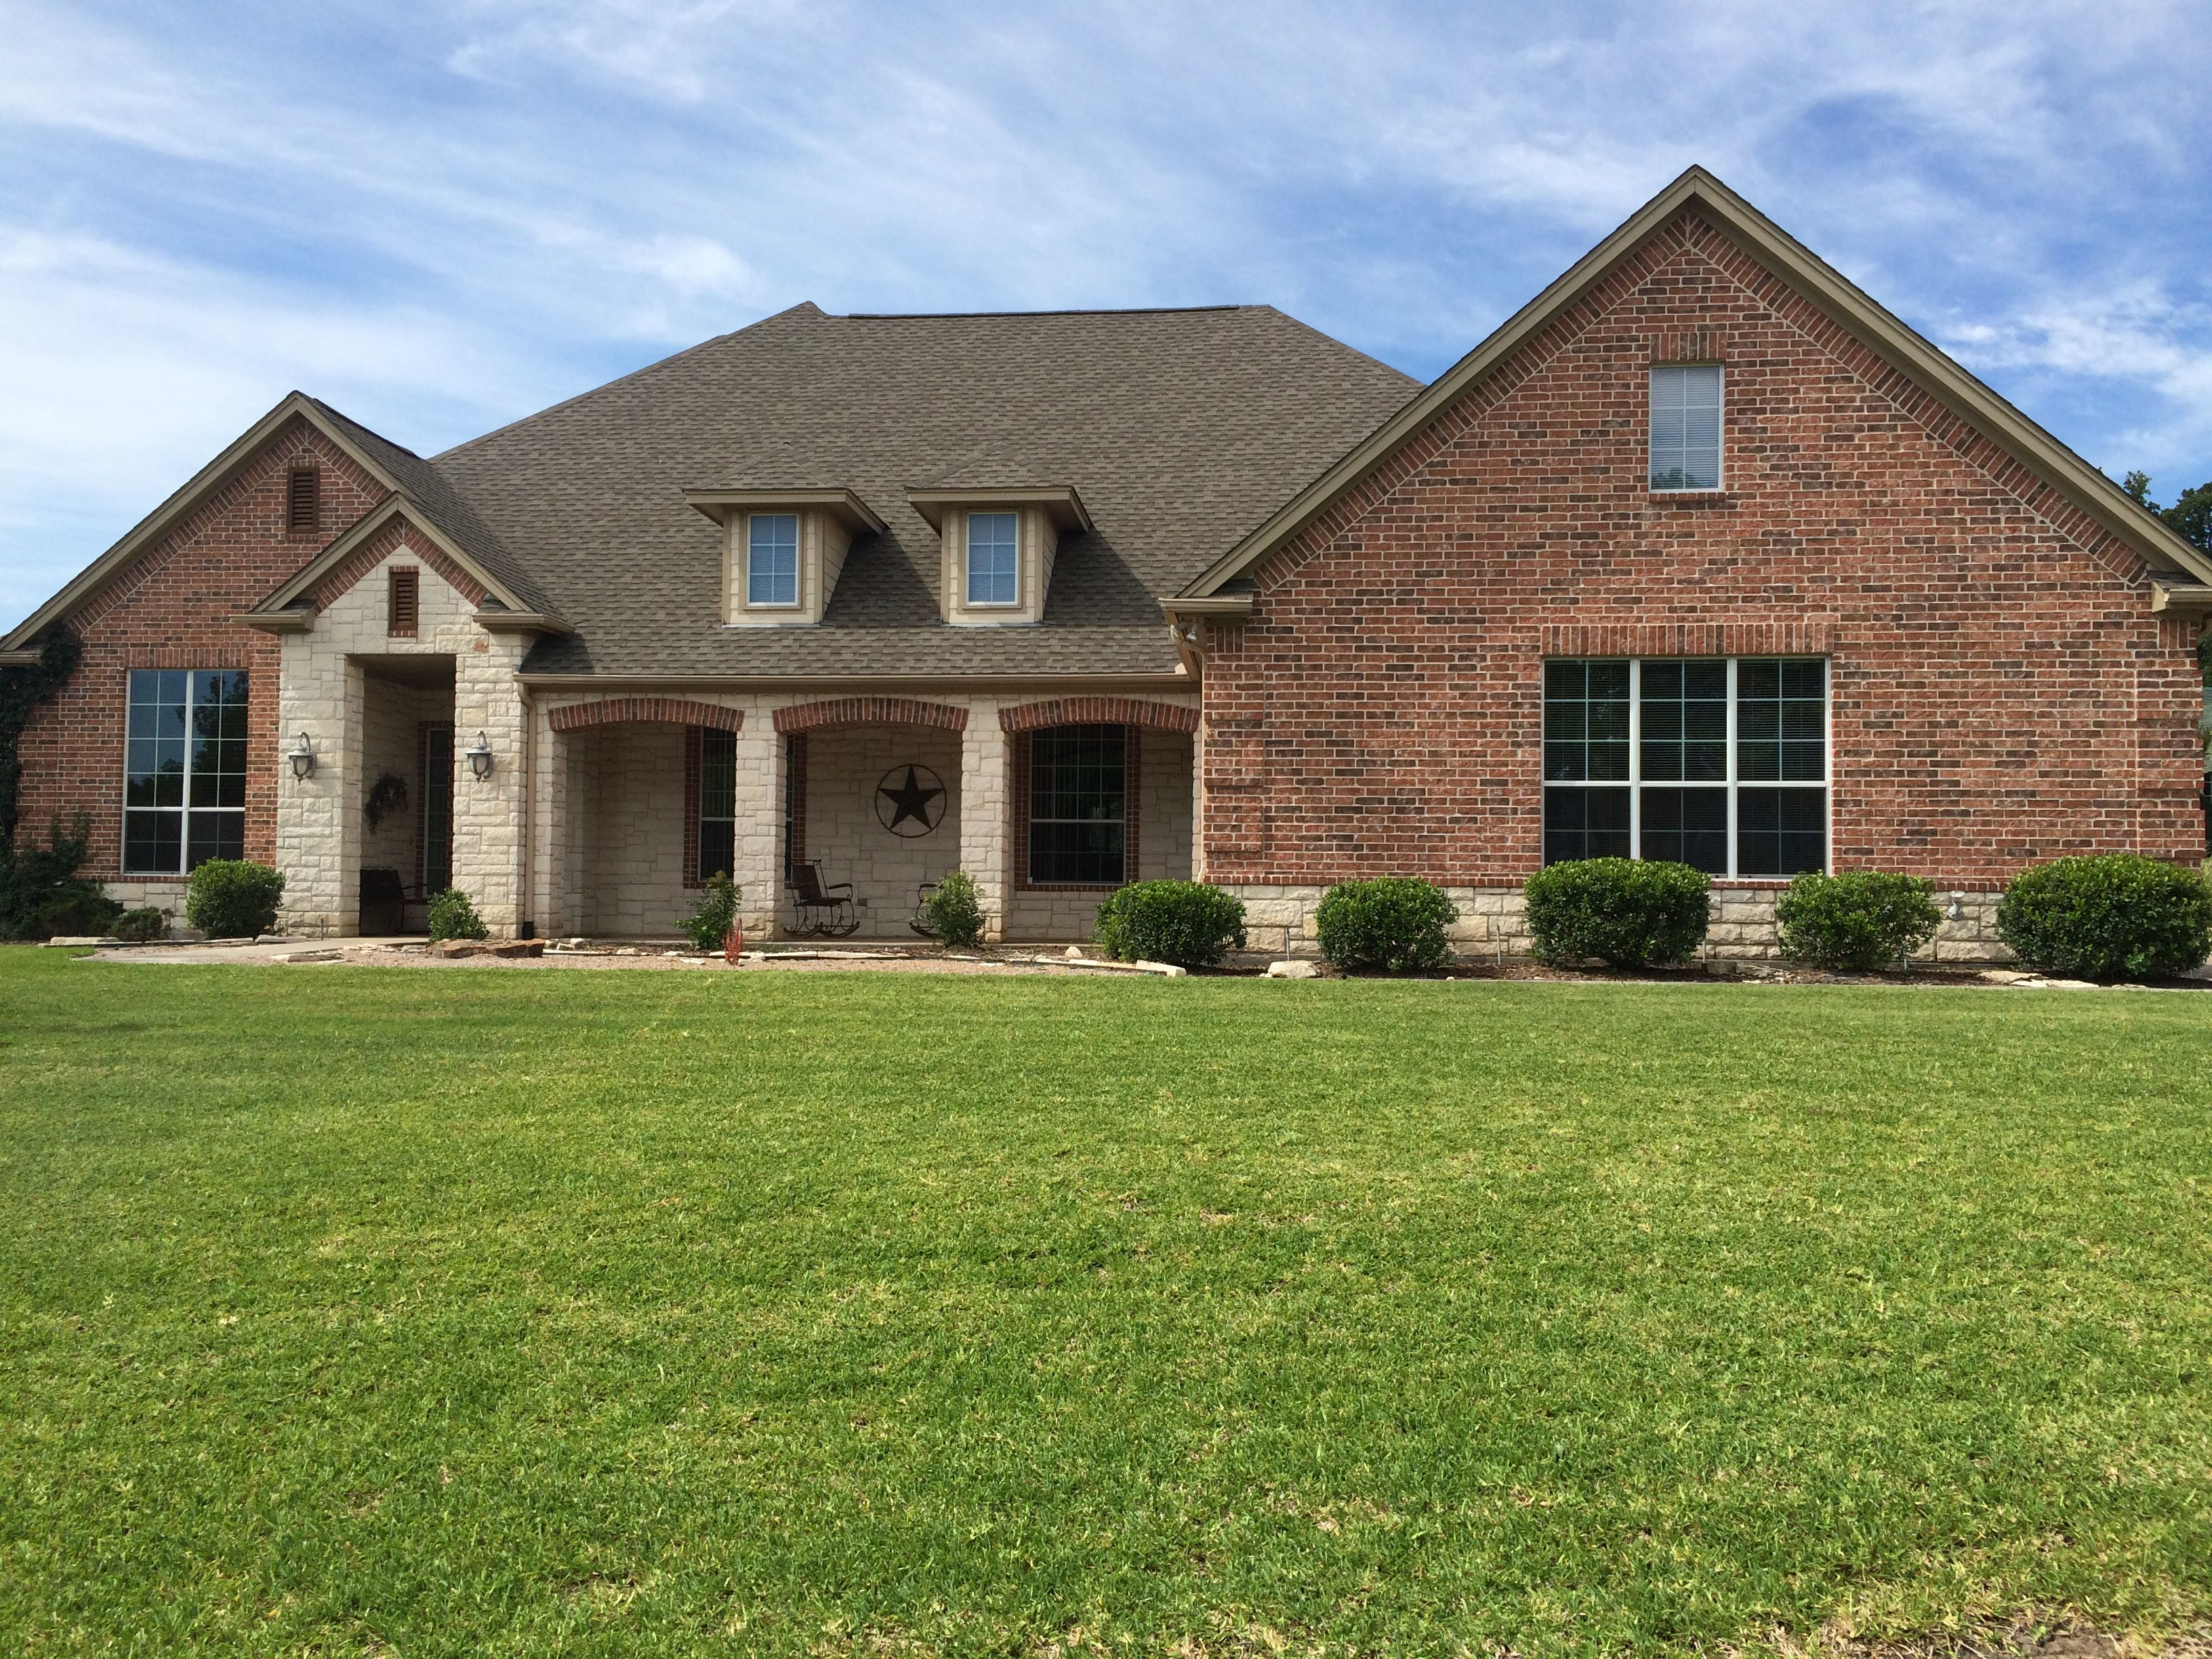 Acme brick and stone homes springfield mo google search